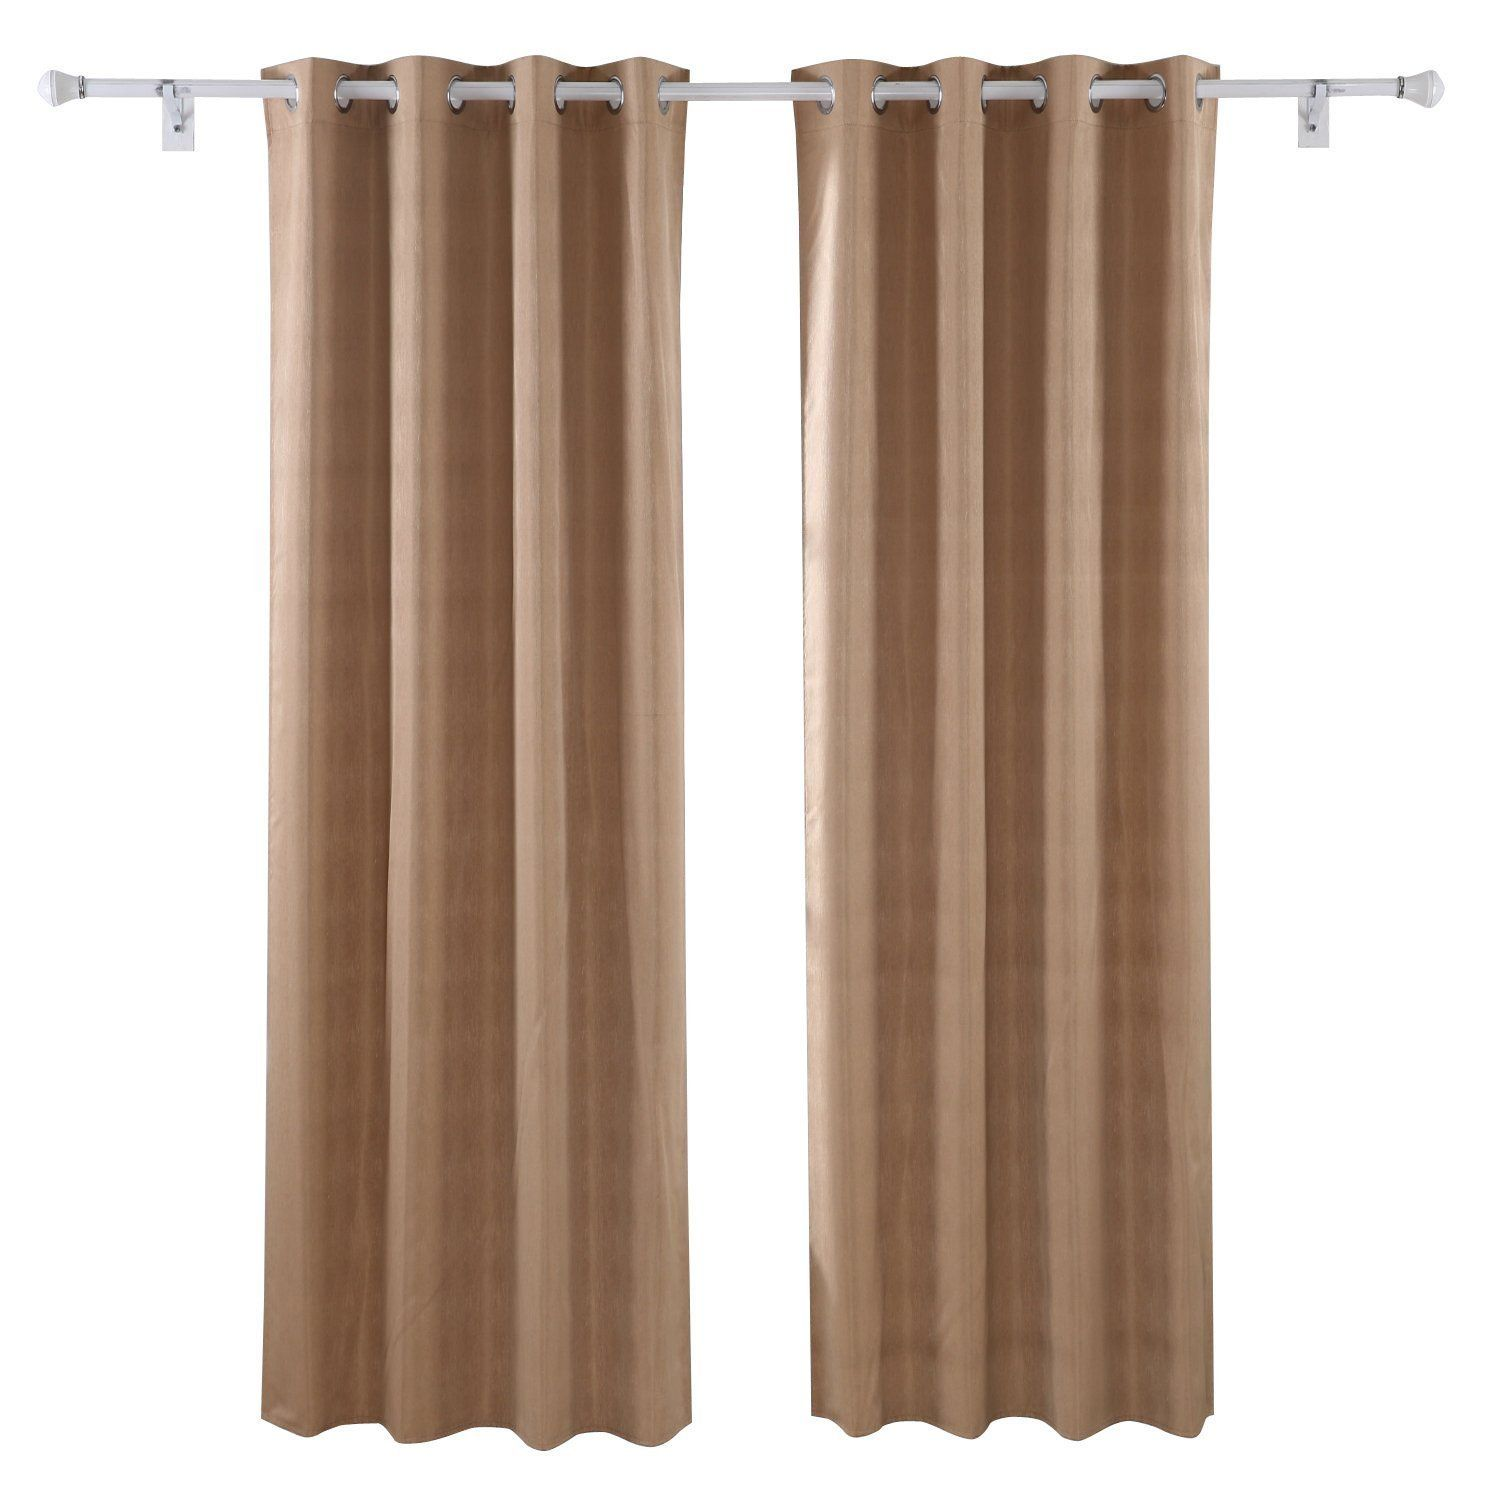 Blackout curtains for bedroom - Deconovo Wood Grain Thermal Insulated Eyelet Curtains Blackout Curtains For Bedroom With Coating Back Layer 46